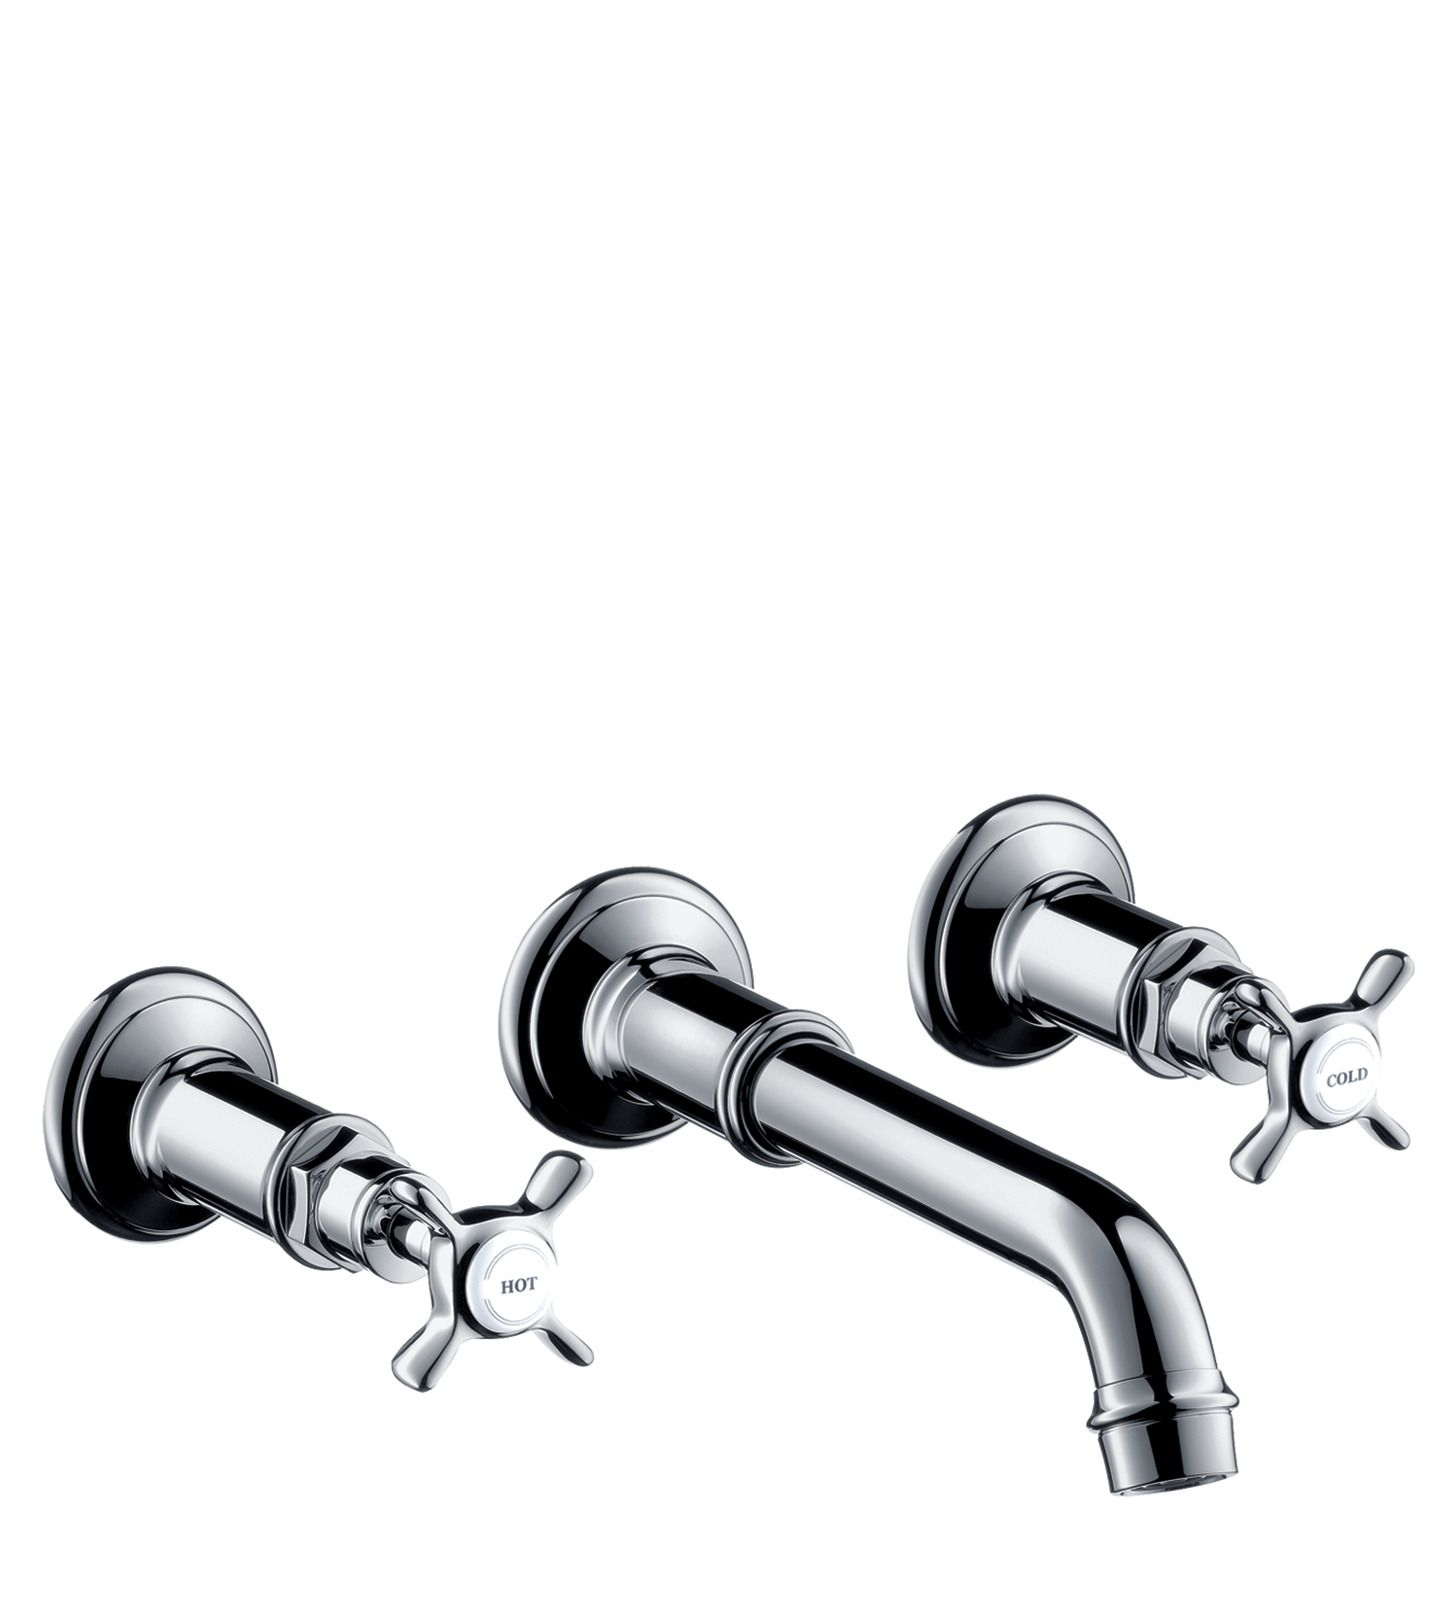 3 Hole Basin Mixer For Concealed Installation Wall Mounted Normal Spray Flow Rate At 3 Bar 5 L Min Ceramic Valve Wash Basin Modern Mixers Classic Bathroom